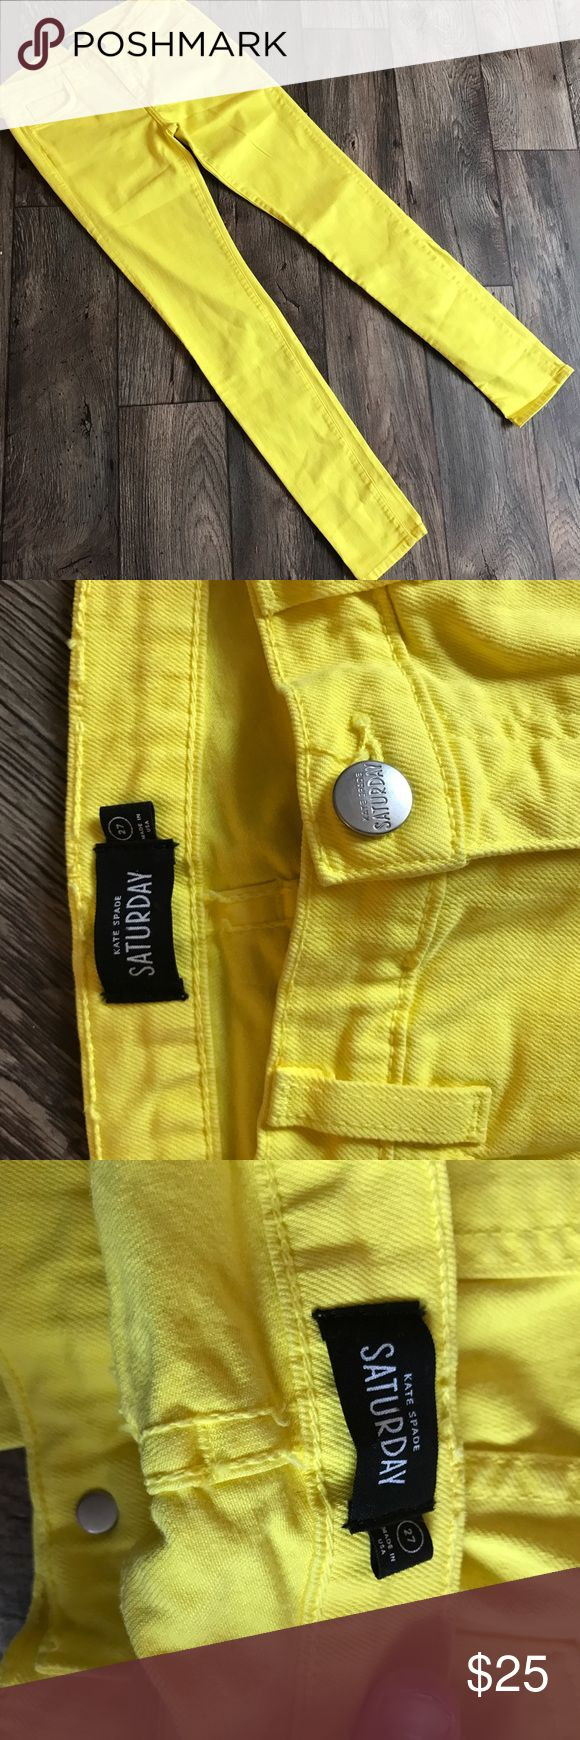 """Kate Spade Saturday Yellow jeans size: 27 🌺 Perfect condition kate spade women's Saturday jeans size: 27 Length:40.5 Inseam:31.5"""" Rise:9"""" Waist:28"""" kate spade Jeans Skinny"""